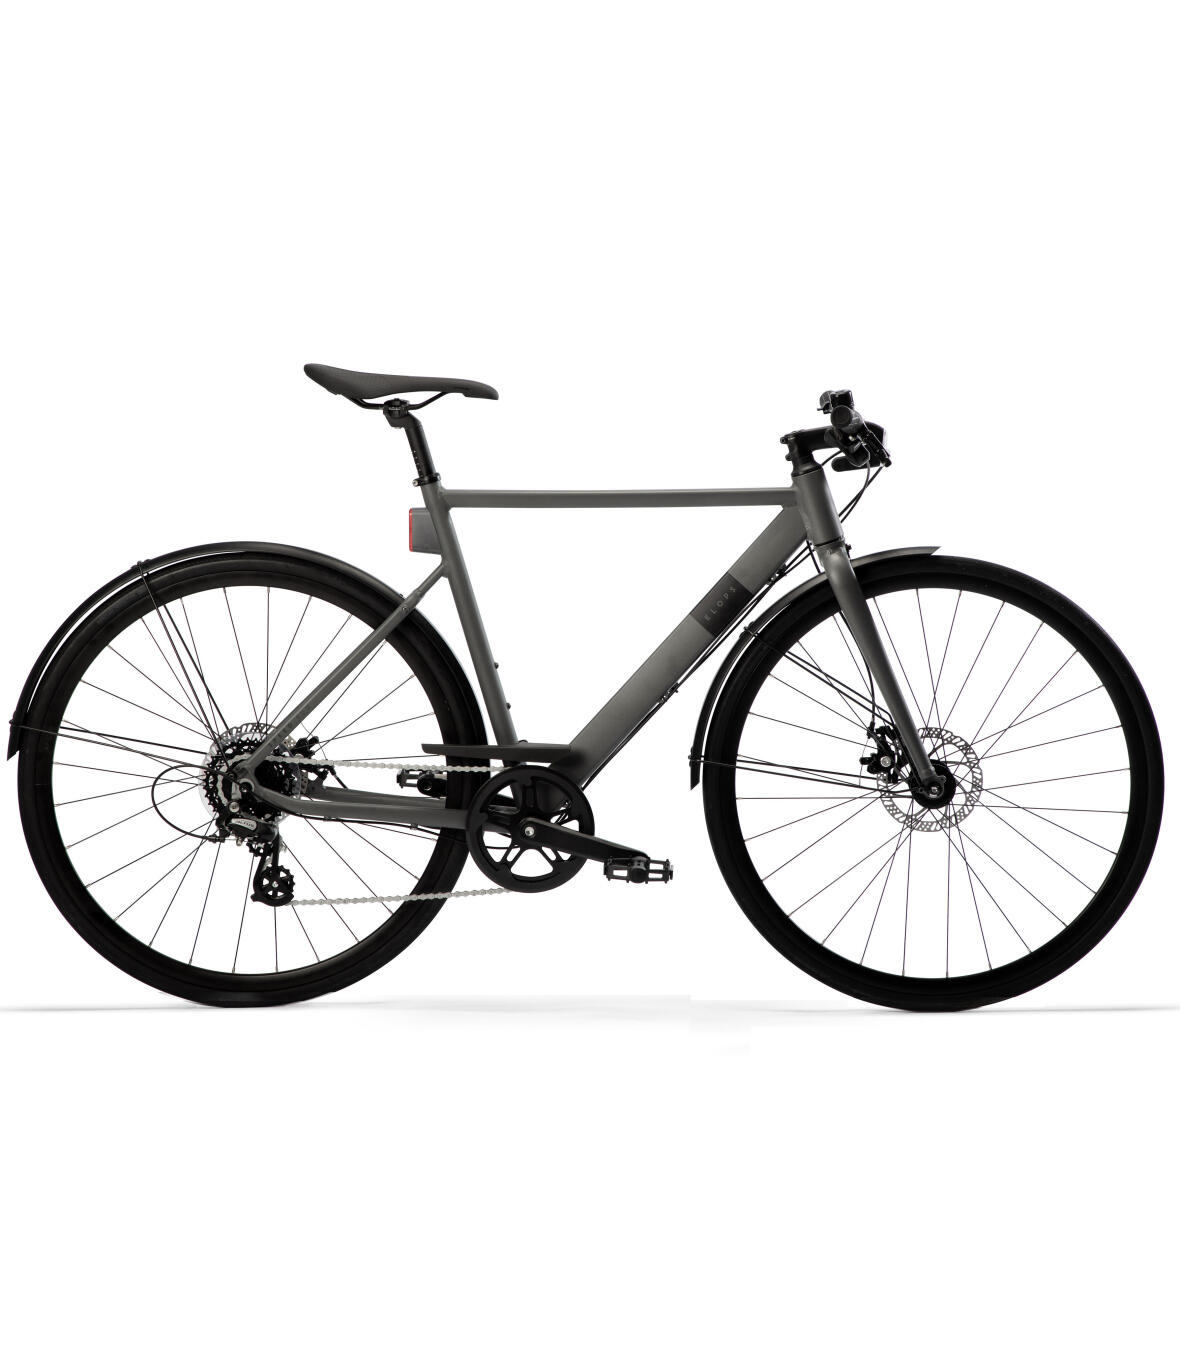 ELOPS_VELO_VILLE_SPEED900_DECATHLON